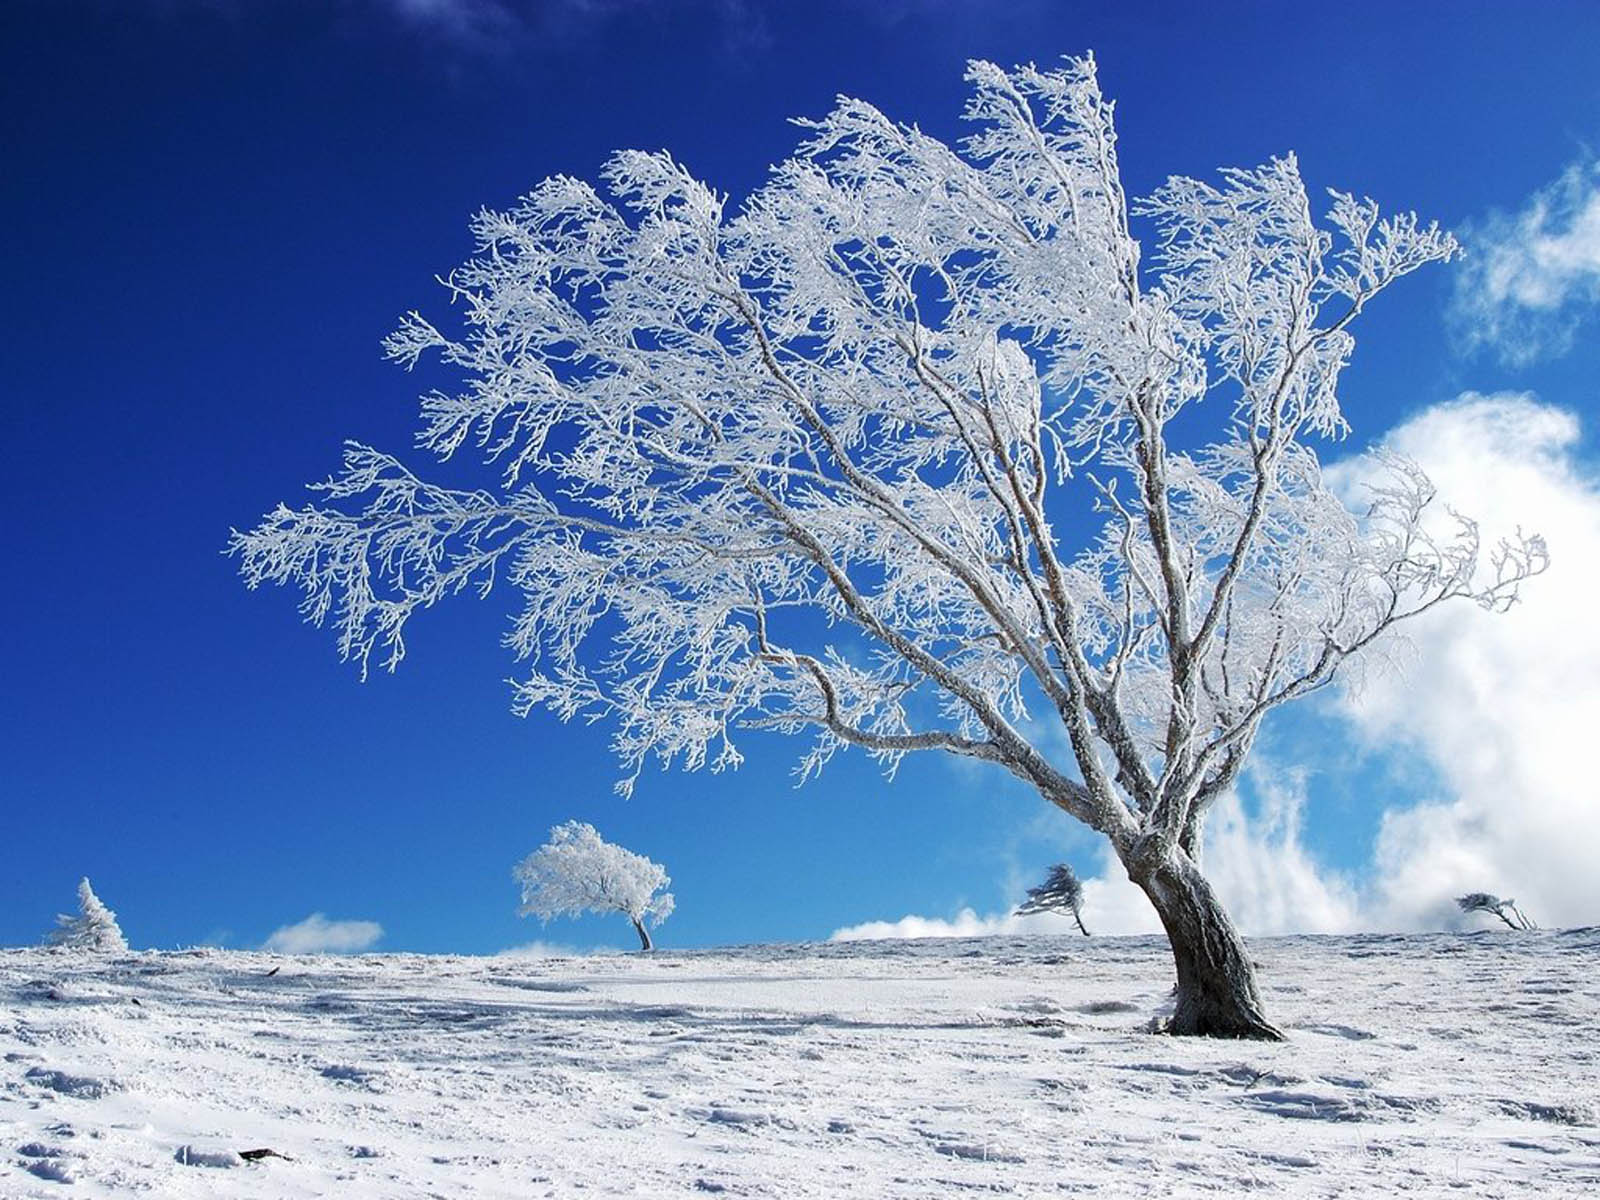 Winter Backgrounds For Desktop 51 Wallpapers – Adorable Wallpapers